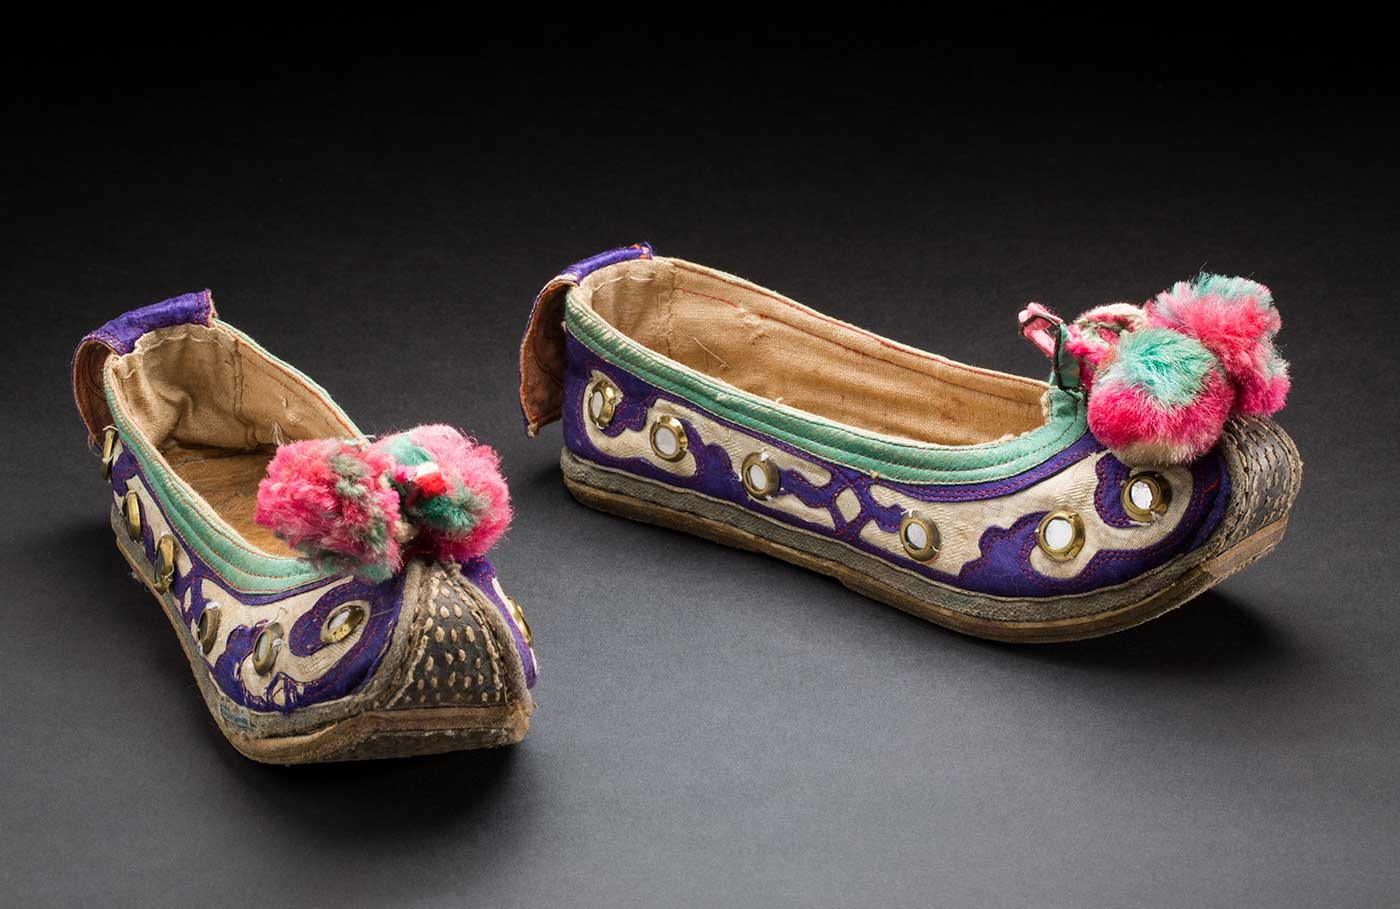 Colour photograph of two embroidered slipper-style shoes with upturned toes and pink and green pompoms at the end. - click to view larger image